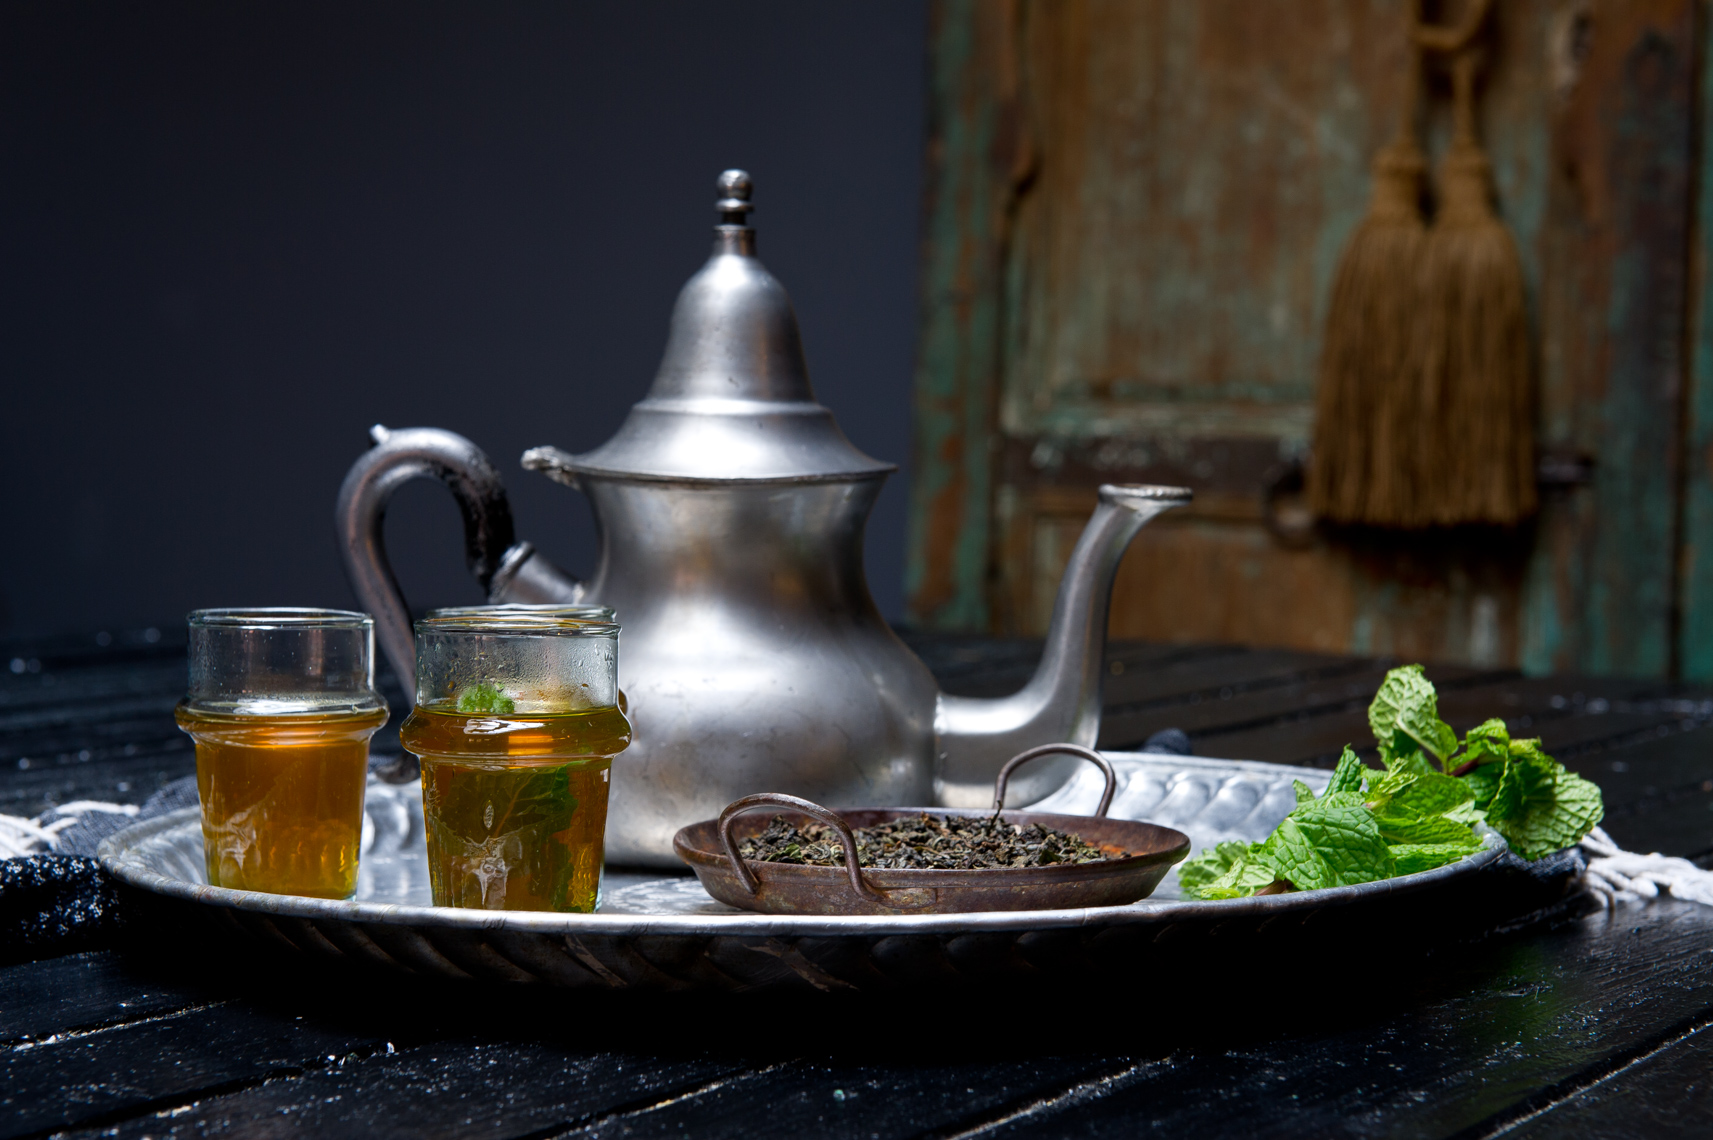 NYC Food Photographer – The Secret Souk Mint Tea